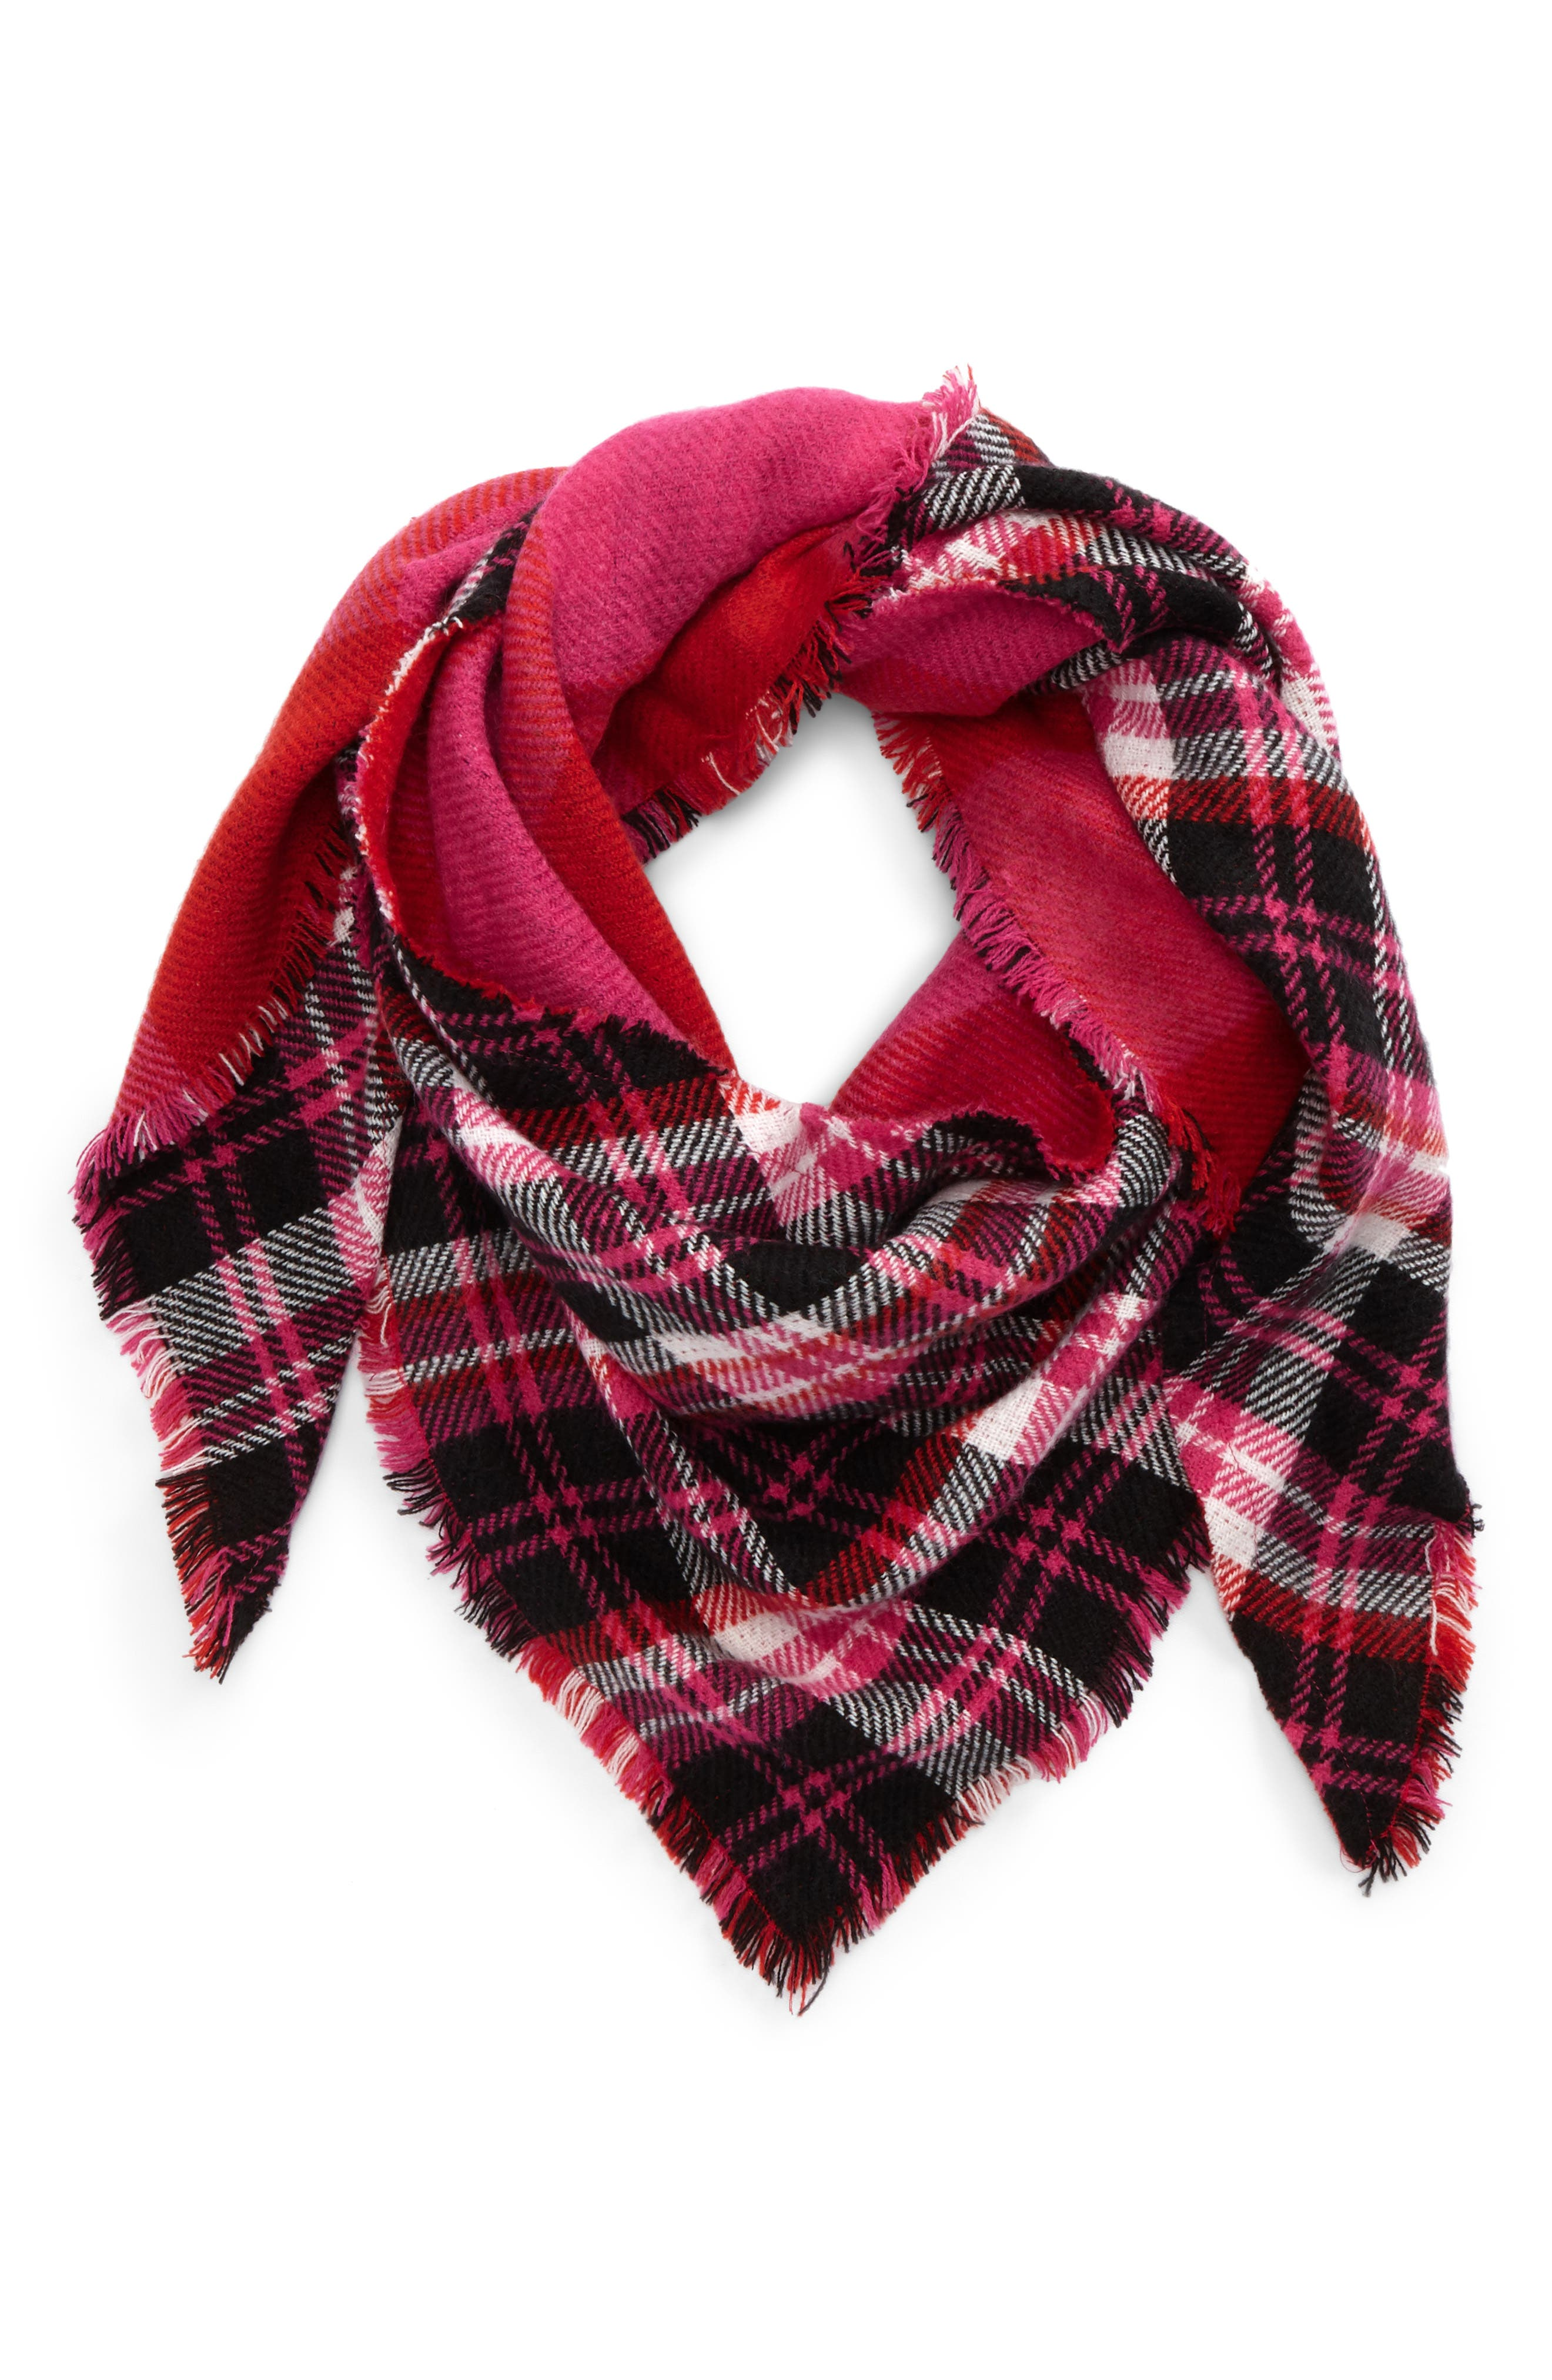 Alternate Image 1 Selected - BP. Reversible Plaid Triangle Scarf